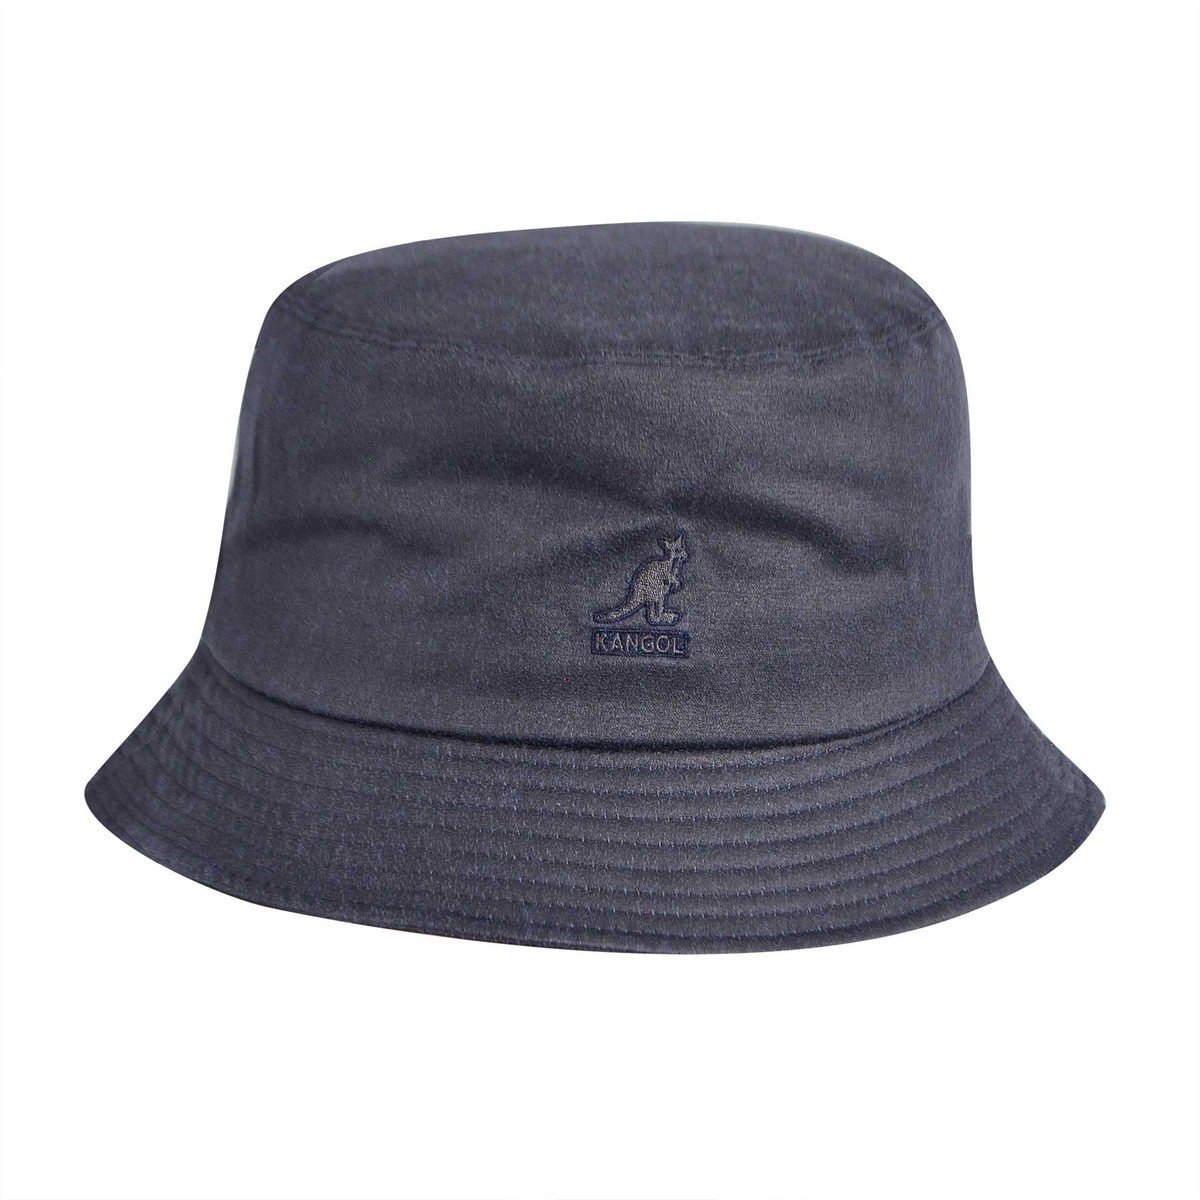 Kangol カンゴール Quilted Military Lahinch Dark Blue バケットハット 帽子 Dark Blue